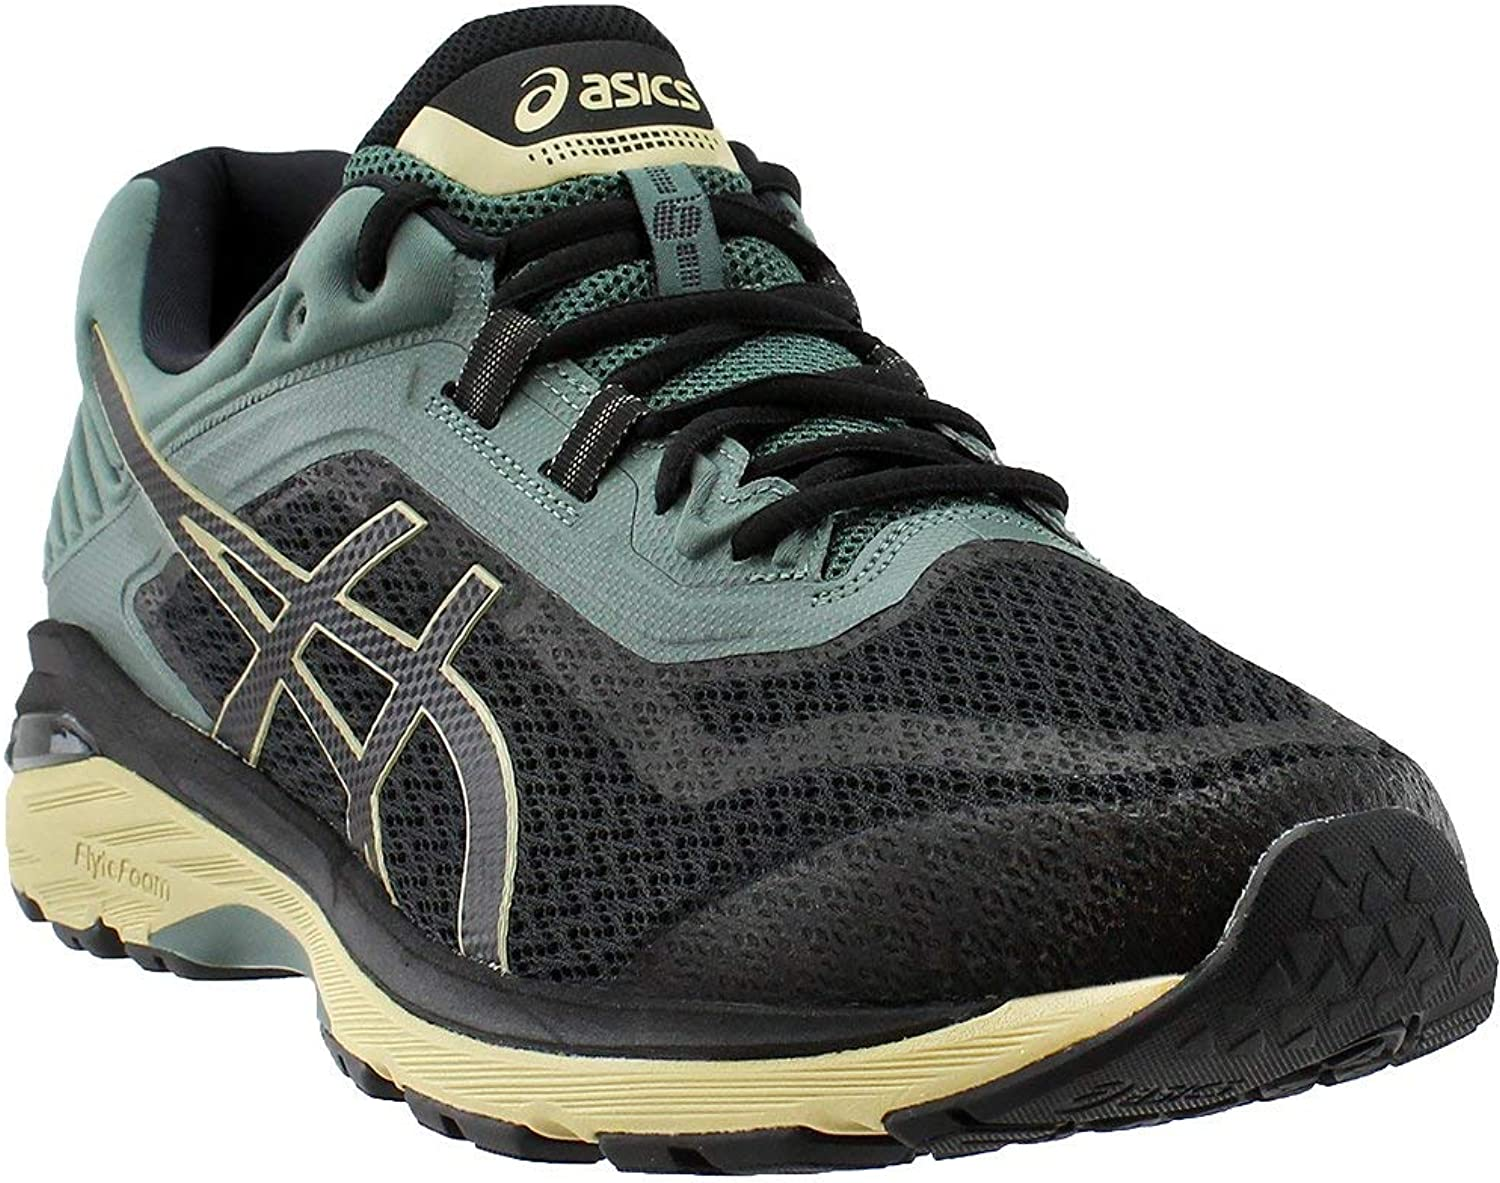 ASICS Men's Gt-2000 6 Trail Running shoes T8A2N